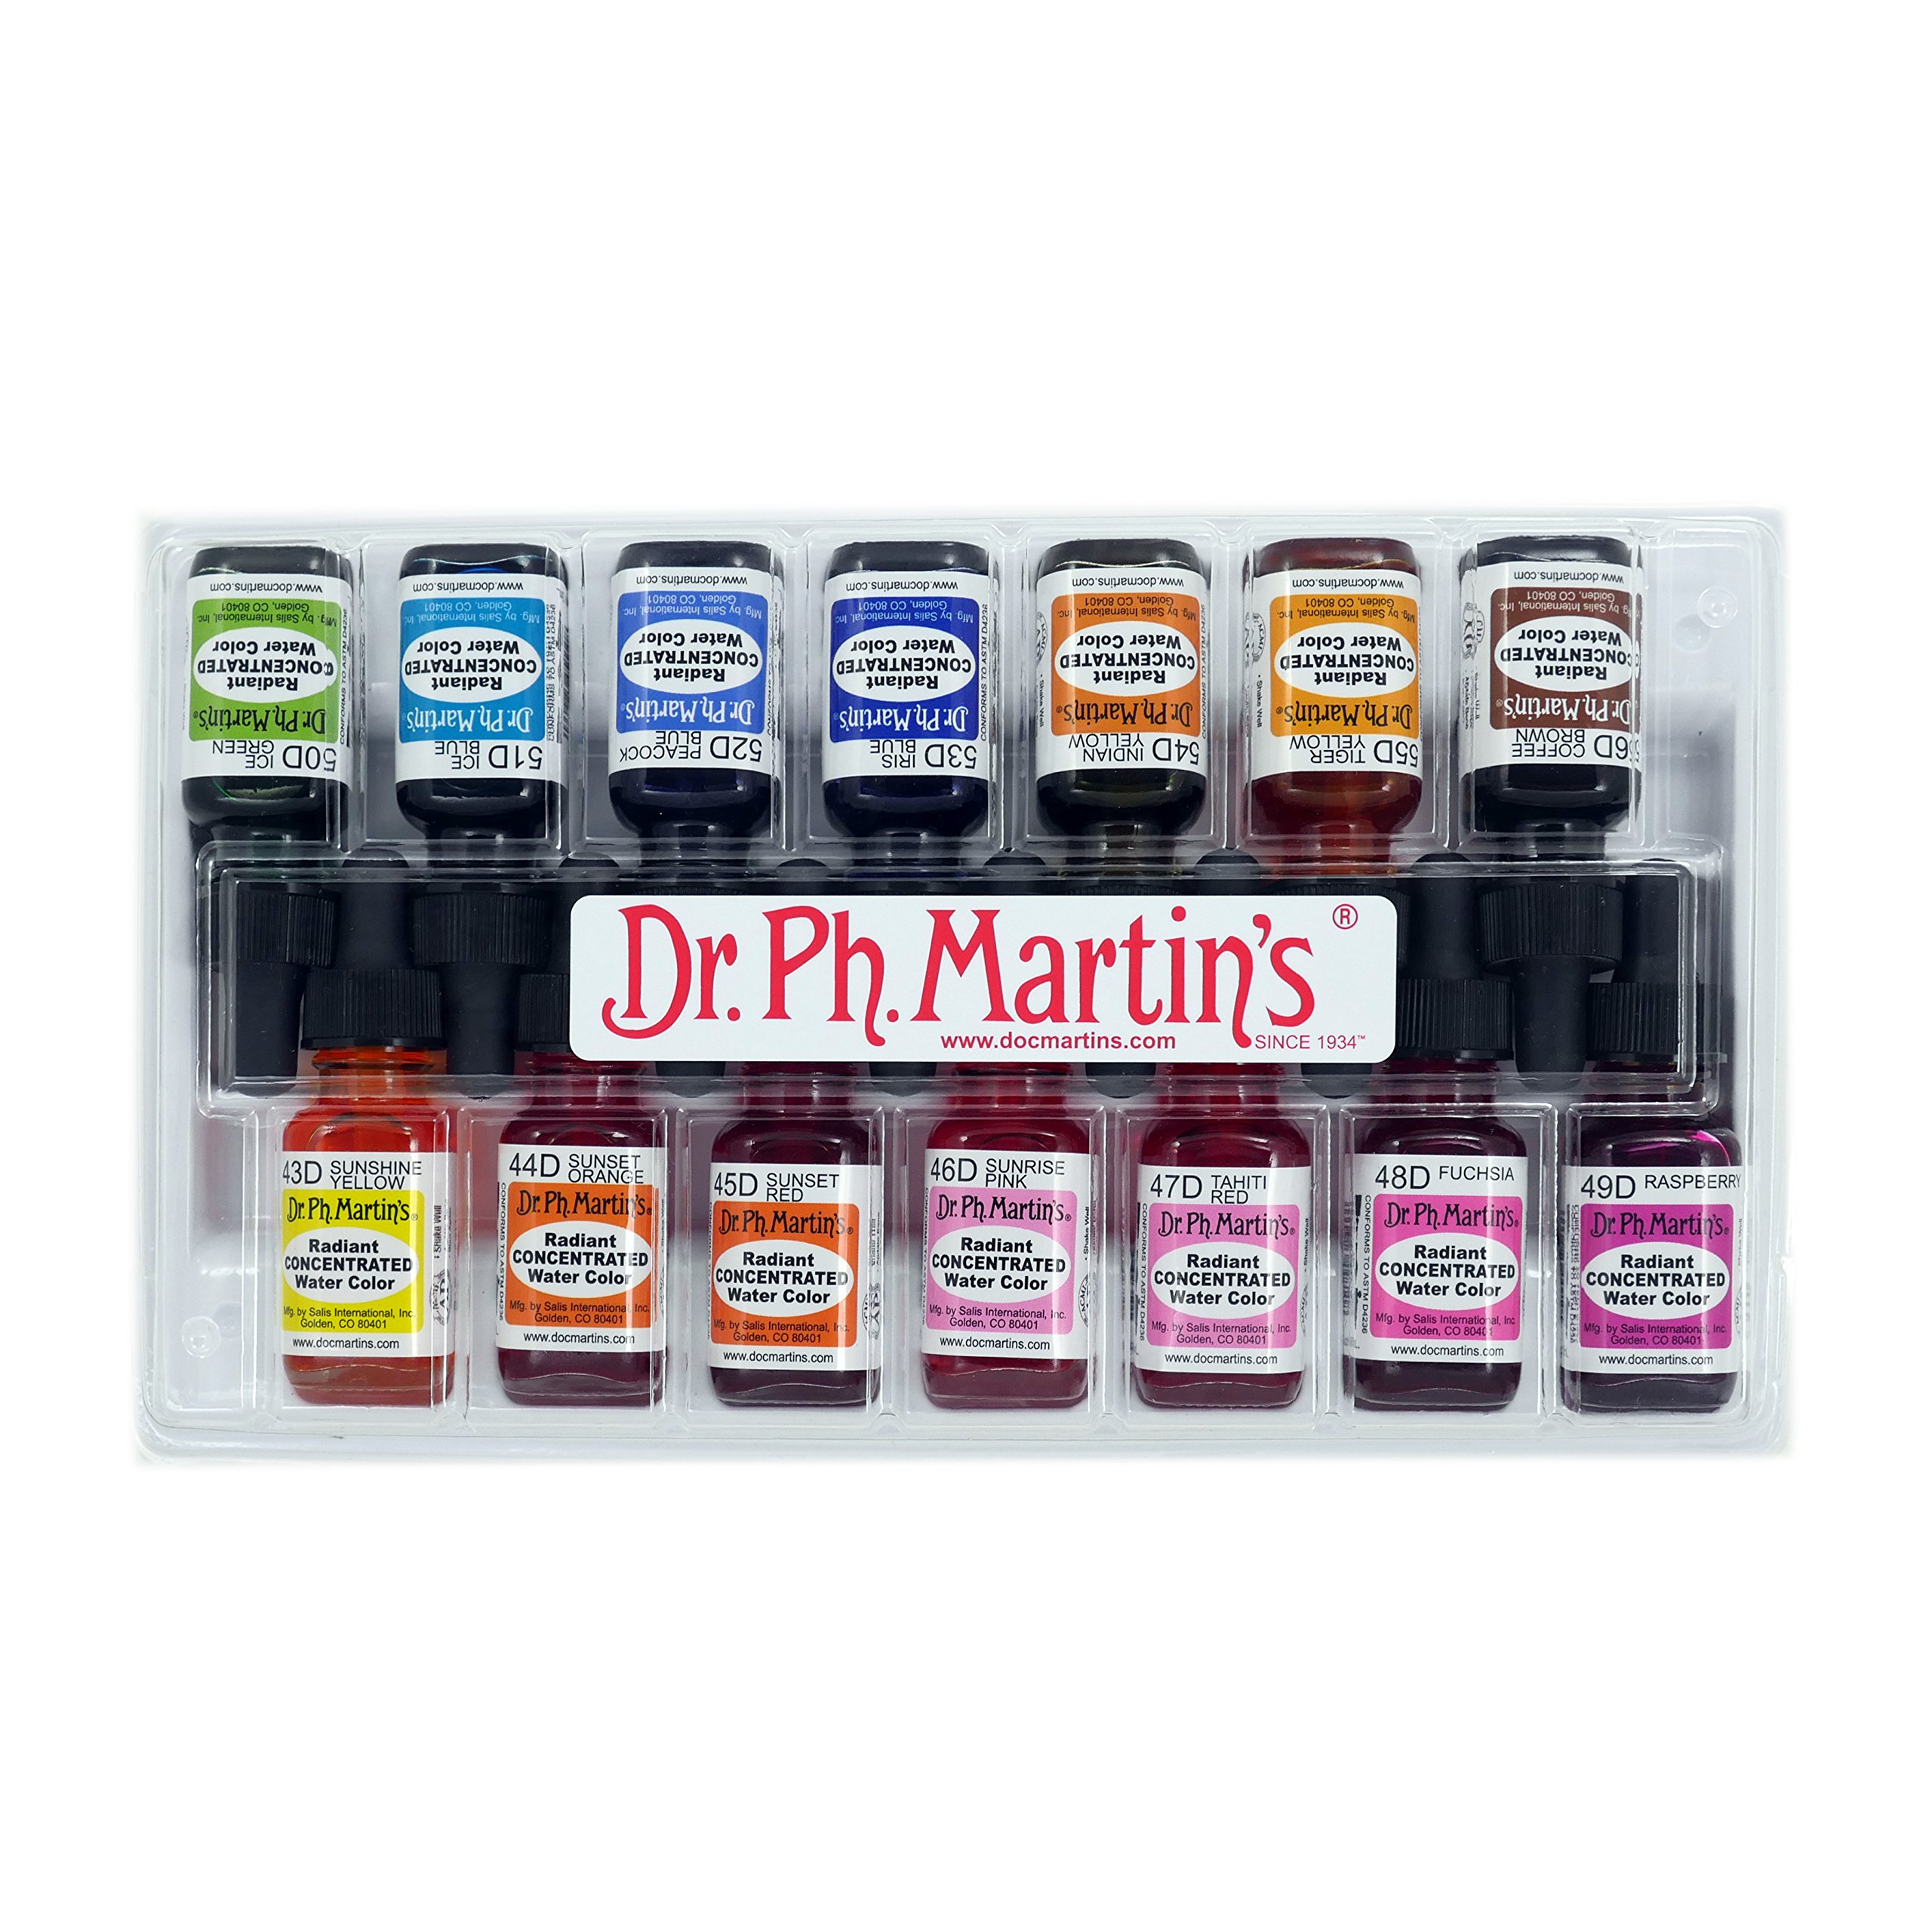 Dr. Ph. Martin's Radiant Concentrated Water Color, 0.5 oz, Set of 14 (Set D) by Dr. Ph. Martin's